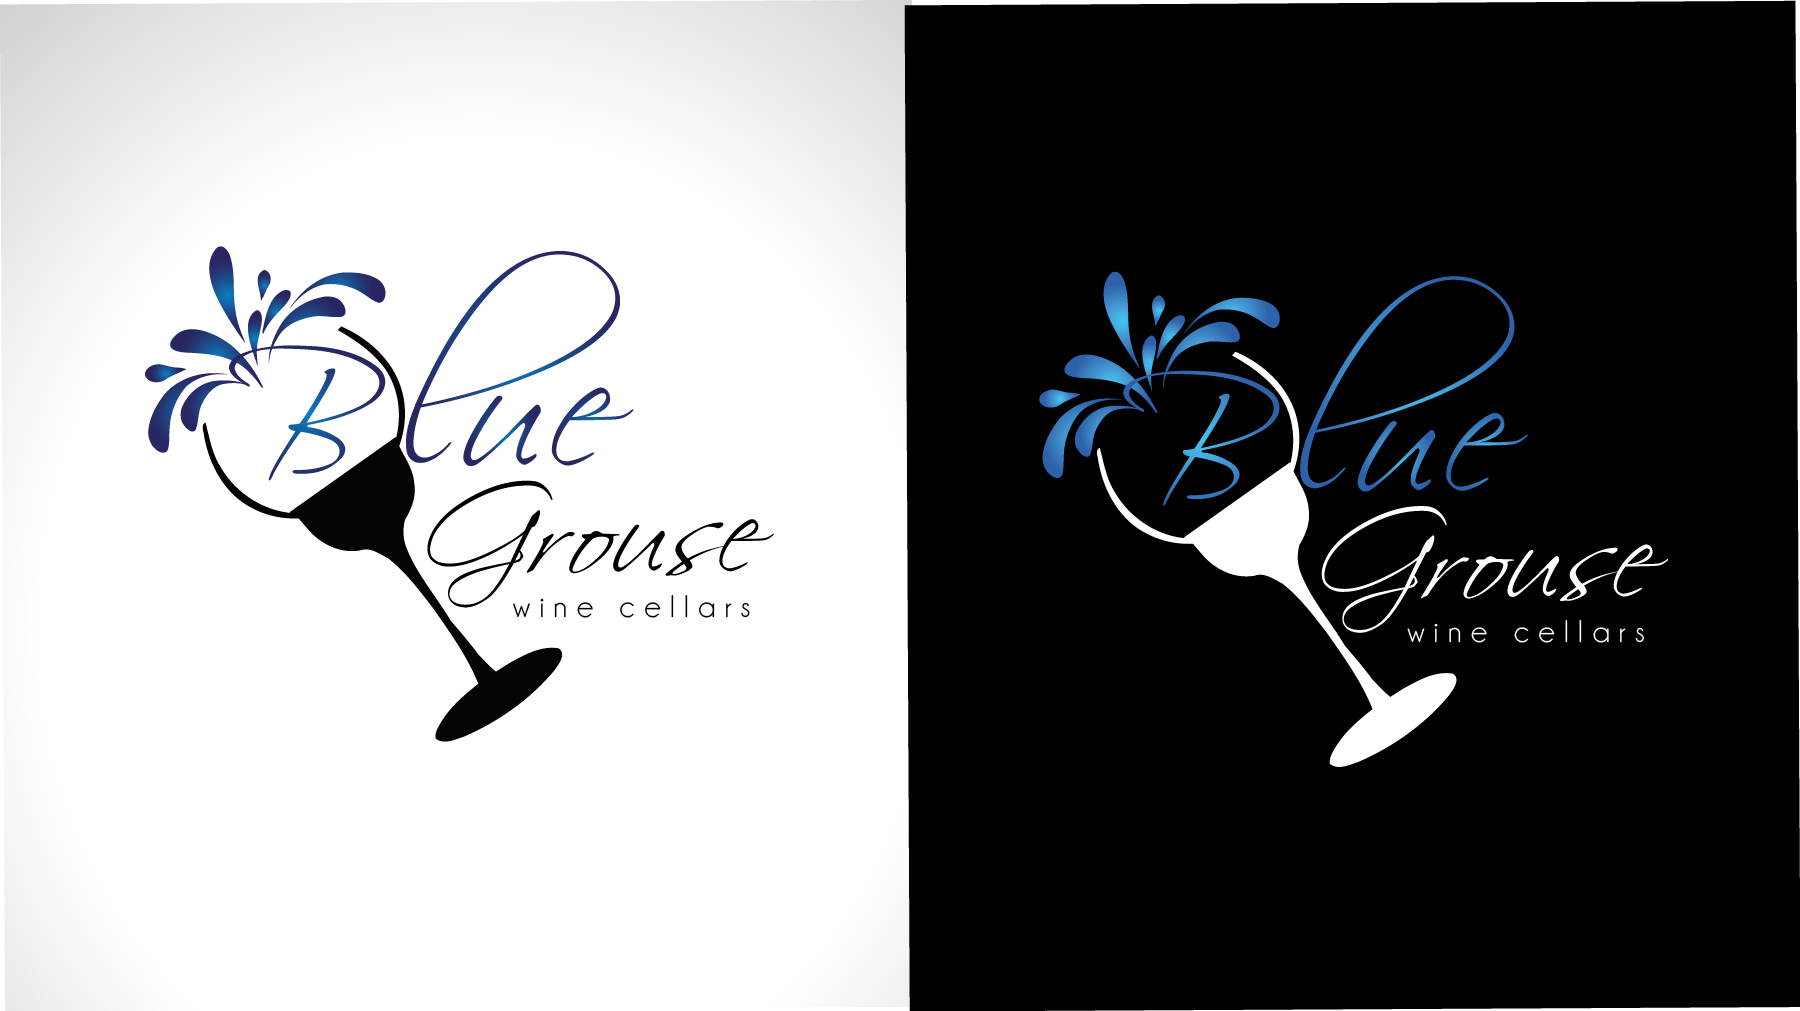 Logo Design by Darina Dimitrova - Entry No. 251 in the Logo Design Contest Creative Logo Design for Blue Grouse Wine Cellars.